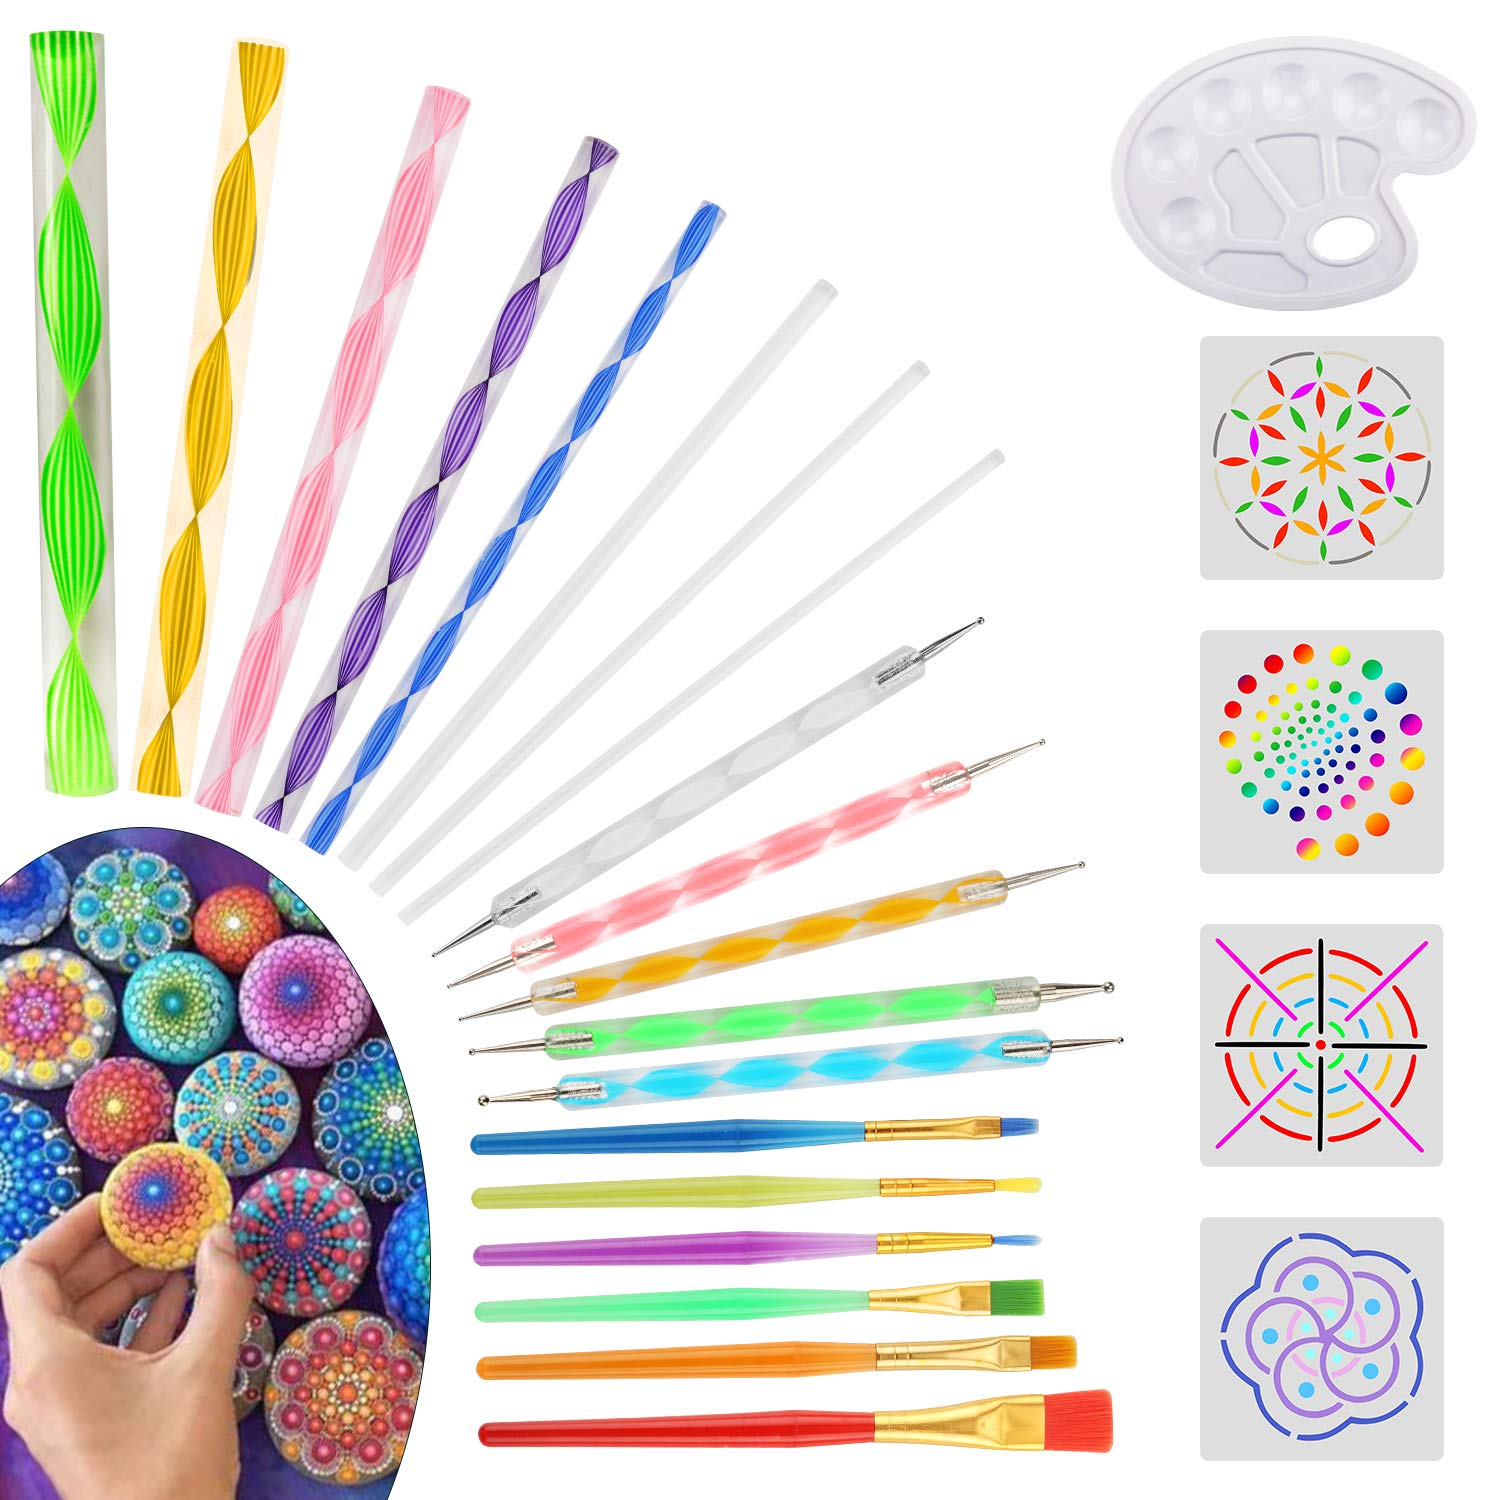 25 Pieces Mandala Dotting Tools for Painting Rocks, Coloring, Drawing and Drafting (1H-U9KG-DQ6L) by SS SHOVAN